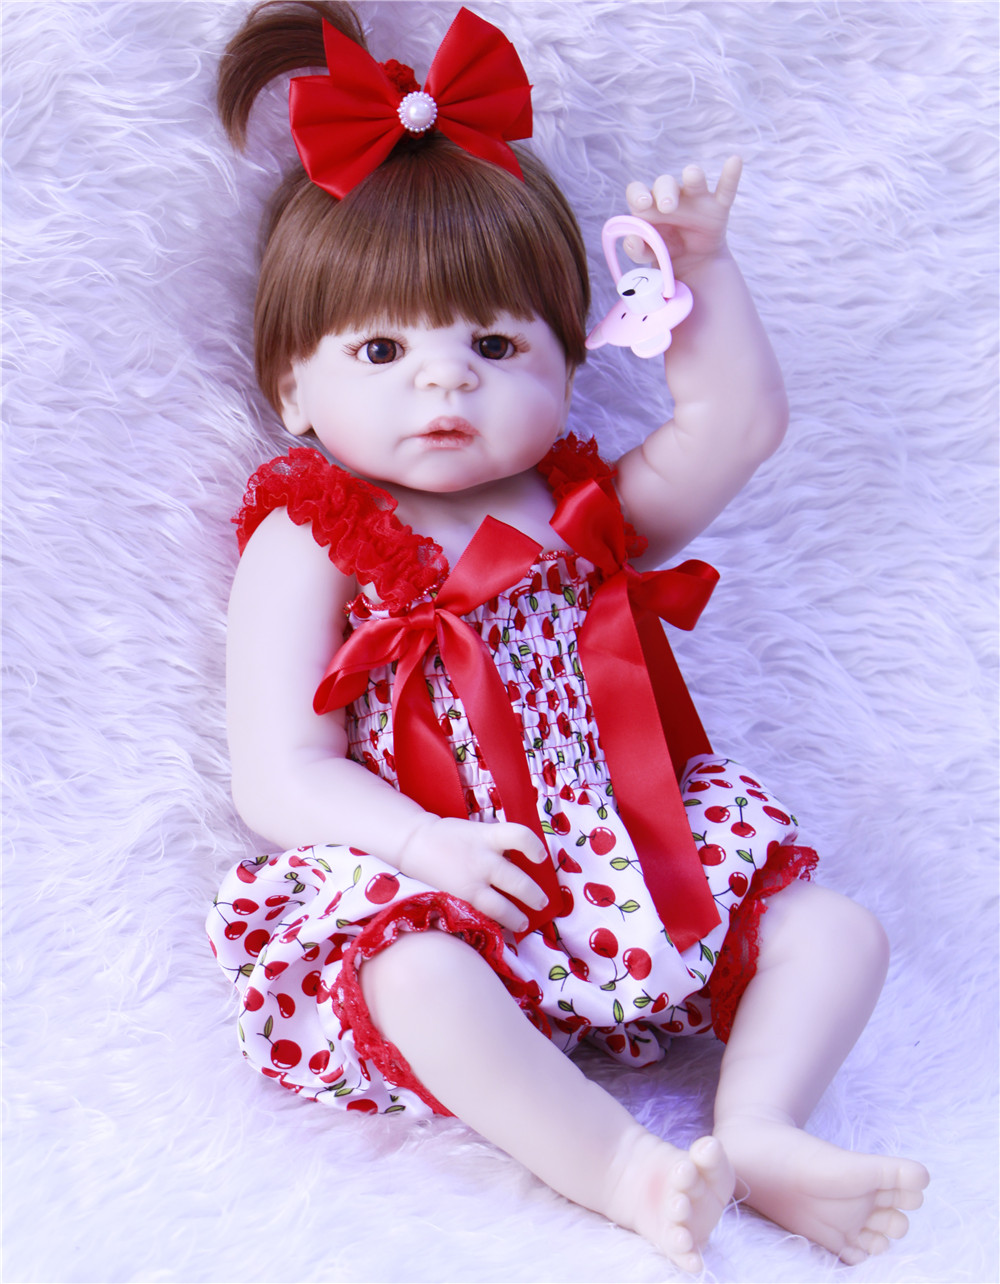 23inch/57cm White skin Baby Dolls Realistic Full Silicone Vinyl Alive Girl Doll Reborn Baby Doll For Children Gifts NPK DOLL23inch/57cm White skin Baby Dolls Realistic Full Silicone Vinyl Alive Girl Doll Reborn Baby Doll For Children Gifts NPK DOLL